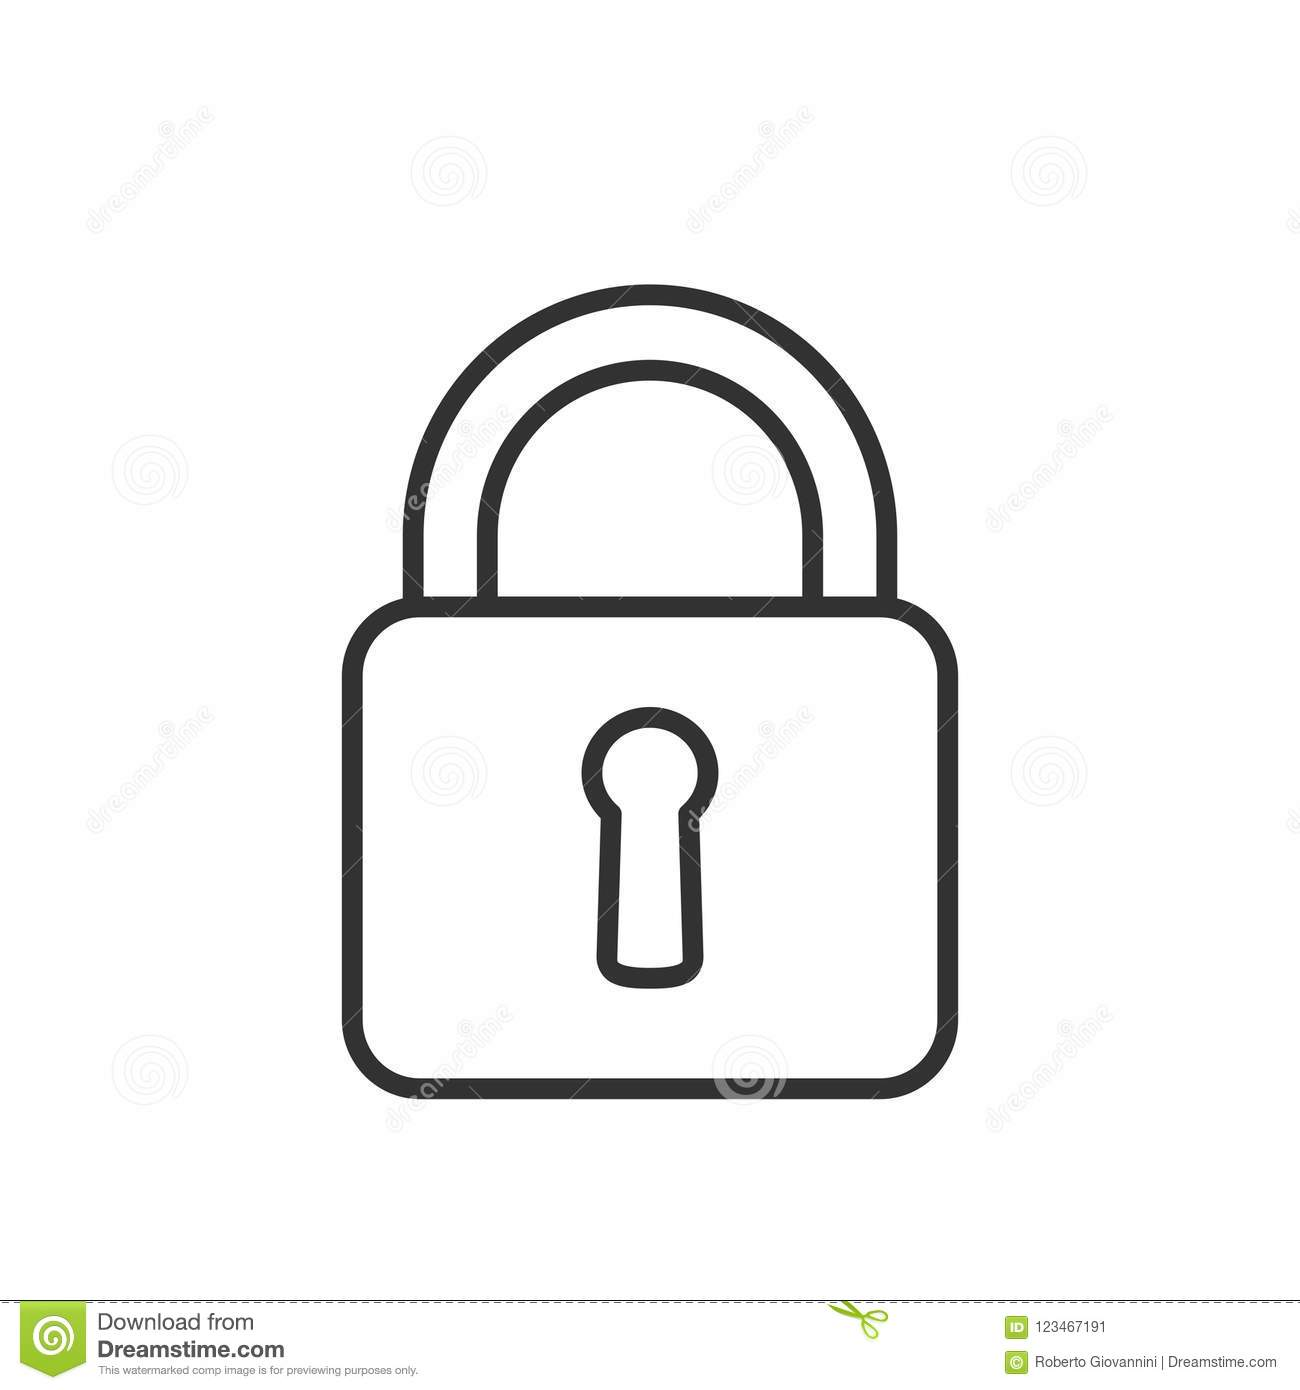 Closed Padlock Outline Flat Icon on White